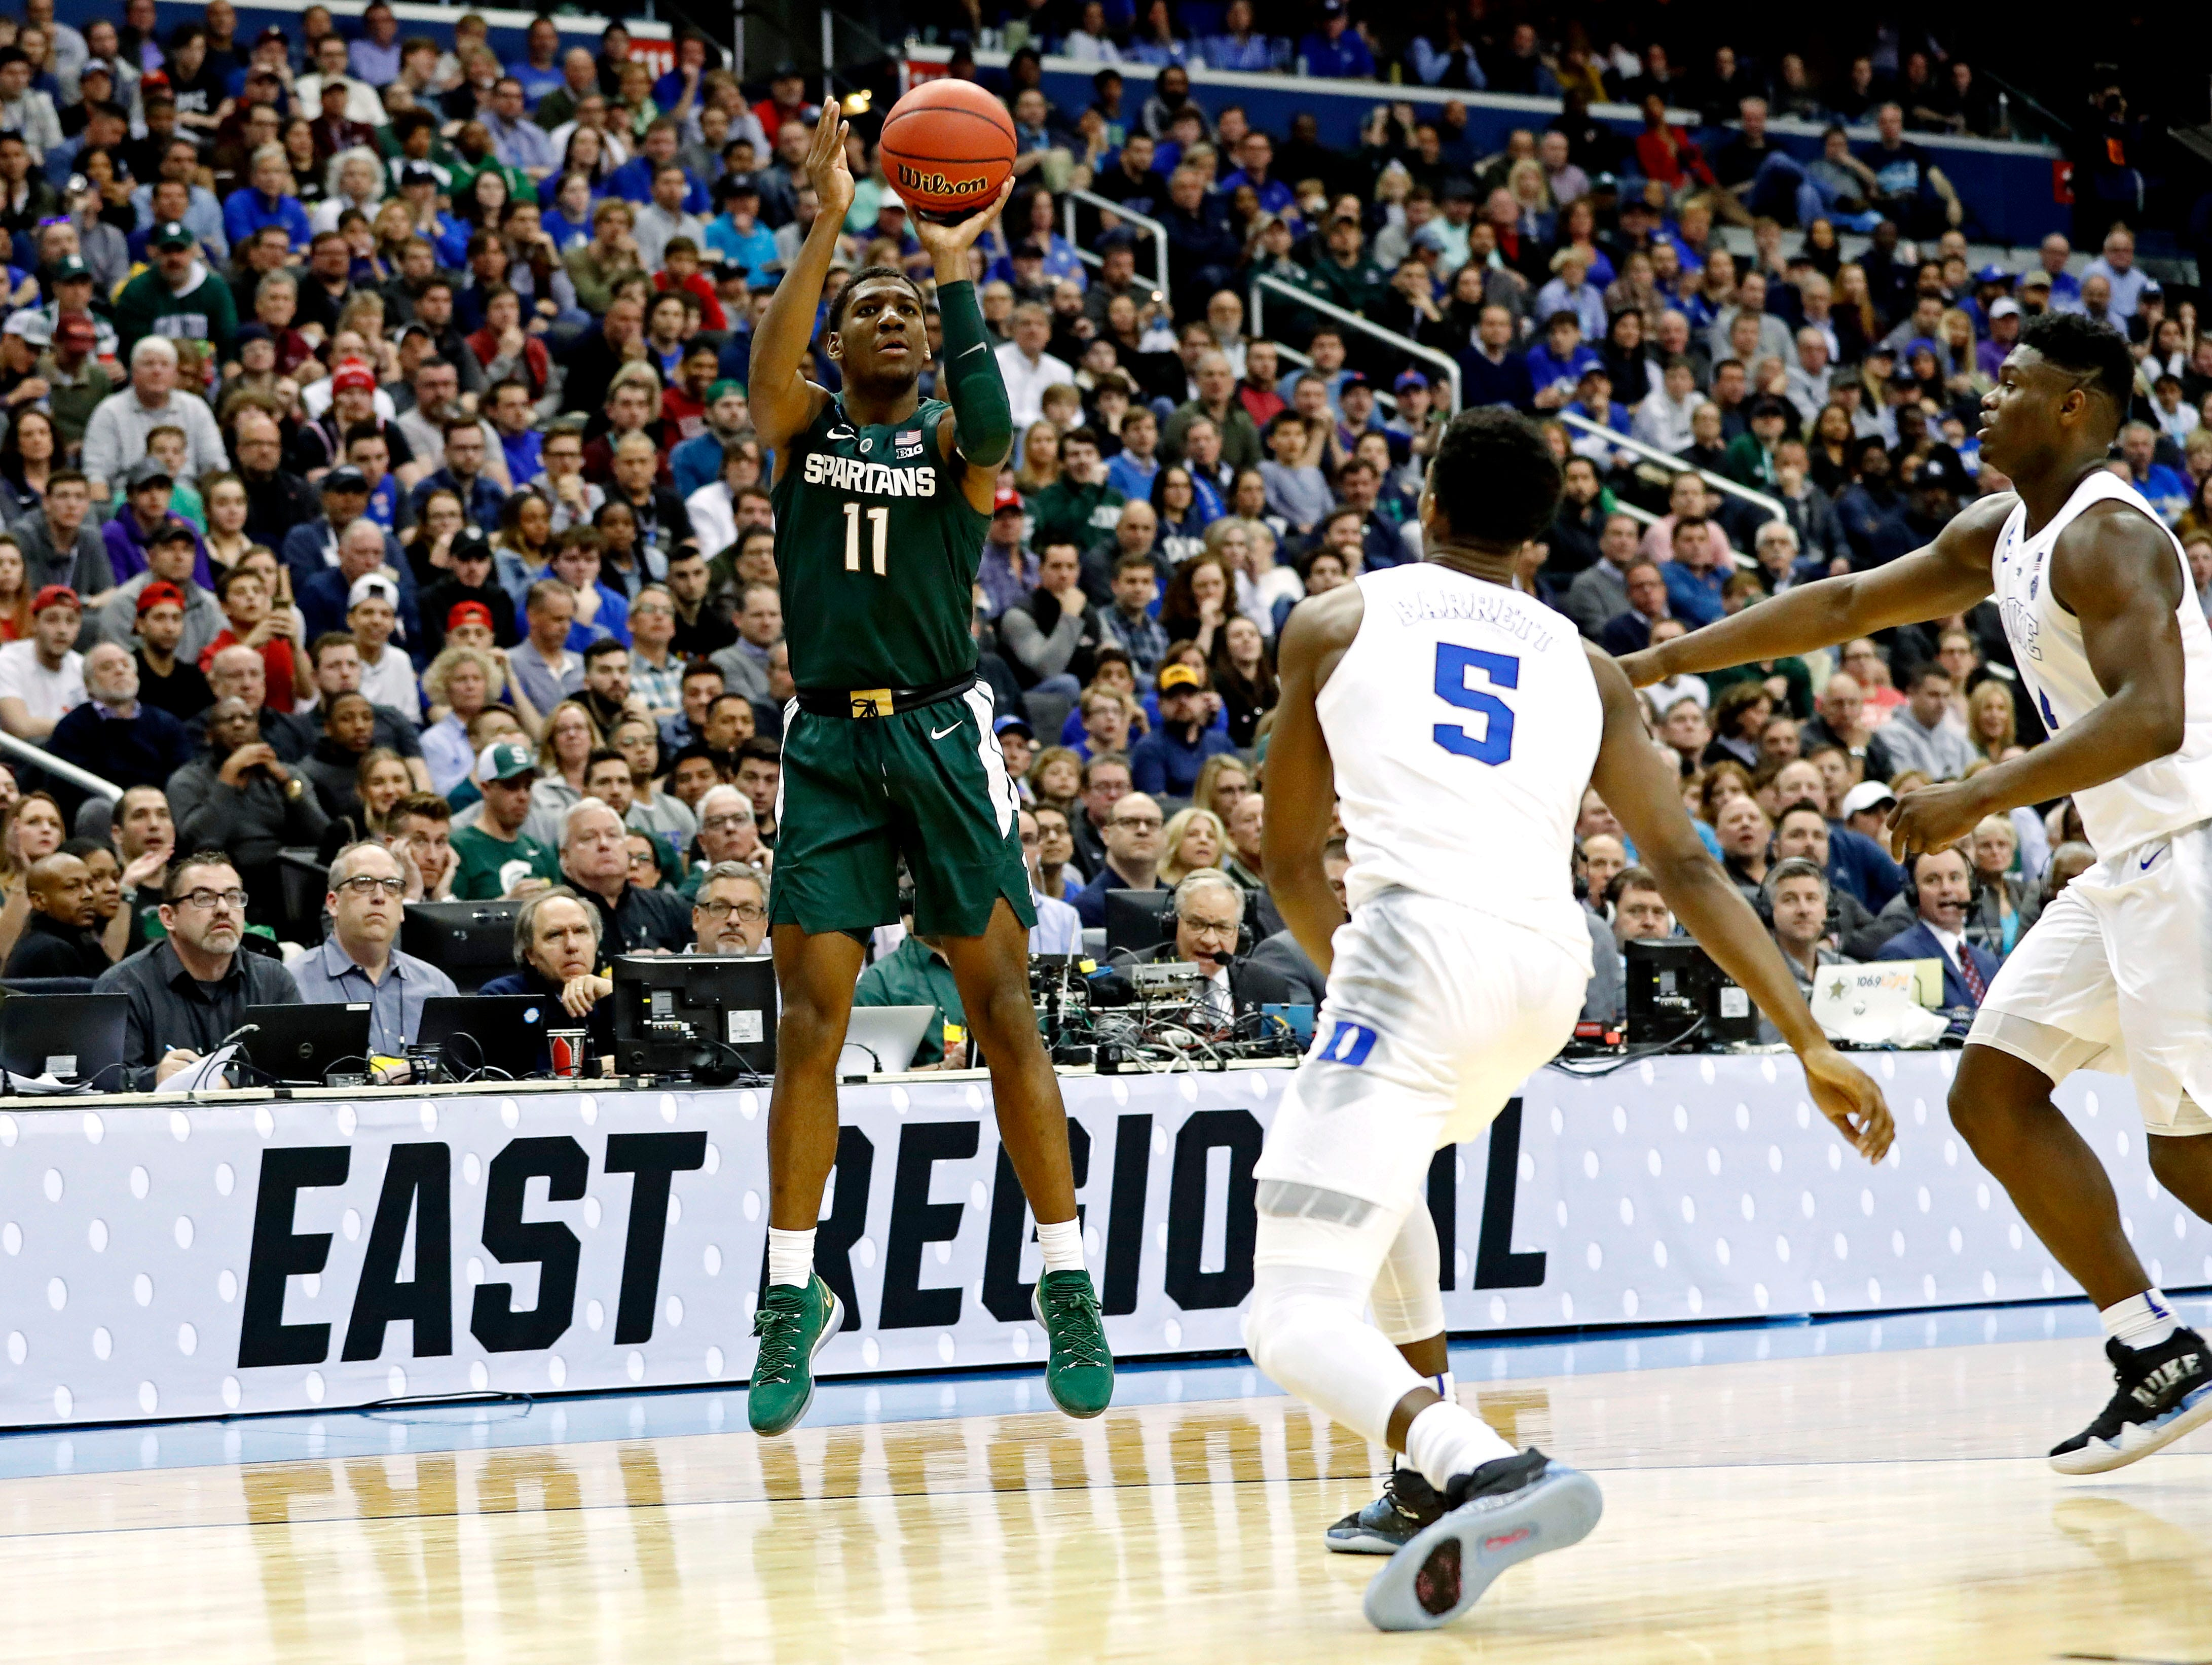 Mar 31, 2019; Washington, DC, USA; Michigan State Spartans forward Aaron Henry (11) shoots the ball against Duke Blue Devils forward RJ Barrett (5) during the second half in the championship game of the east regional of the 2019 NCAA Tournament at Capital One Arena. Mandatory Credit: Geoff Burke-USA TODAY Sports